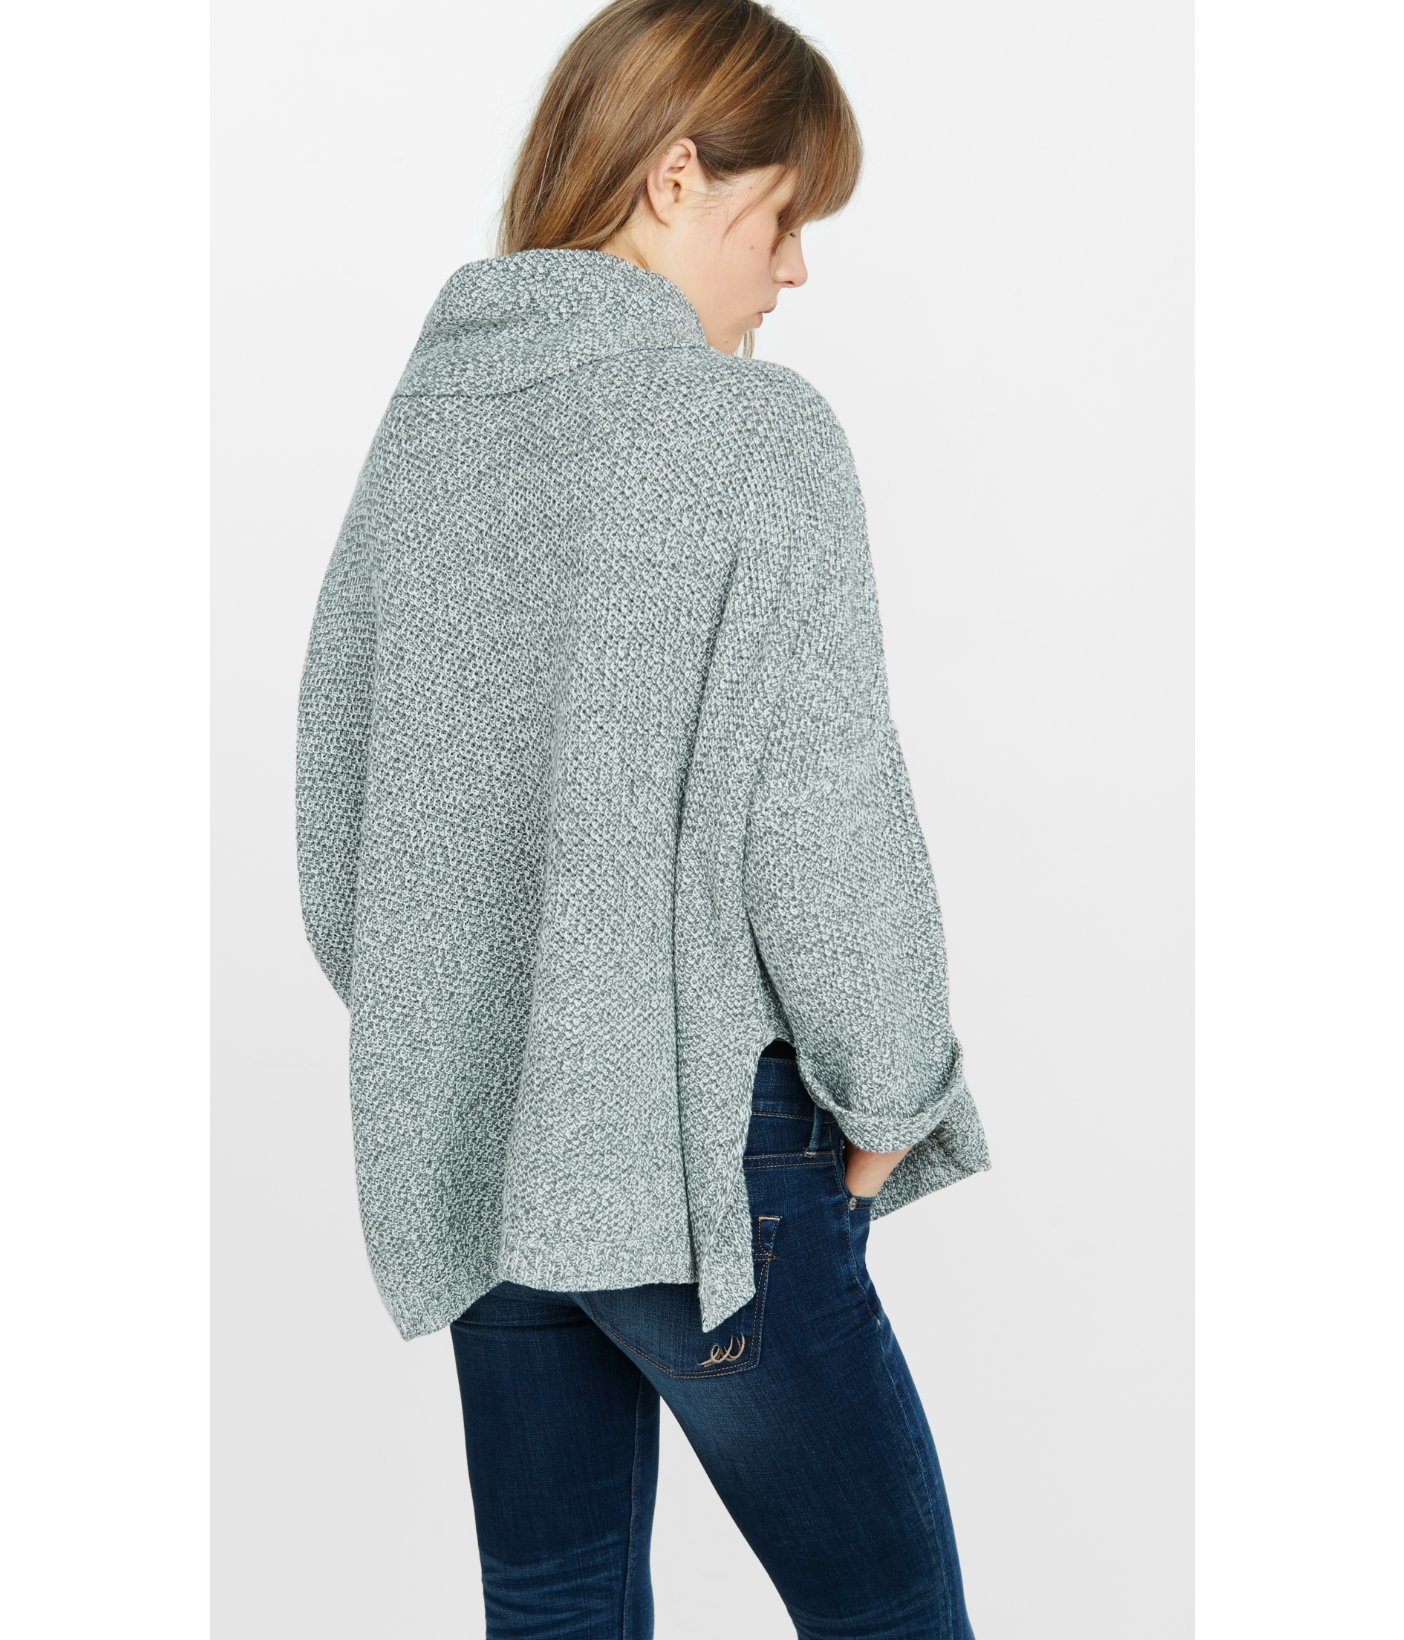 Express Marl Cowl Neck Boxy Sweater in Blue | Lyst